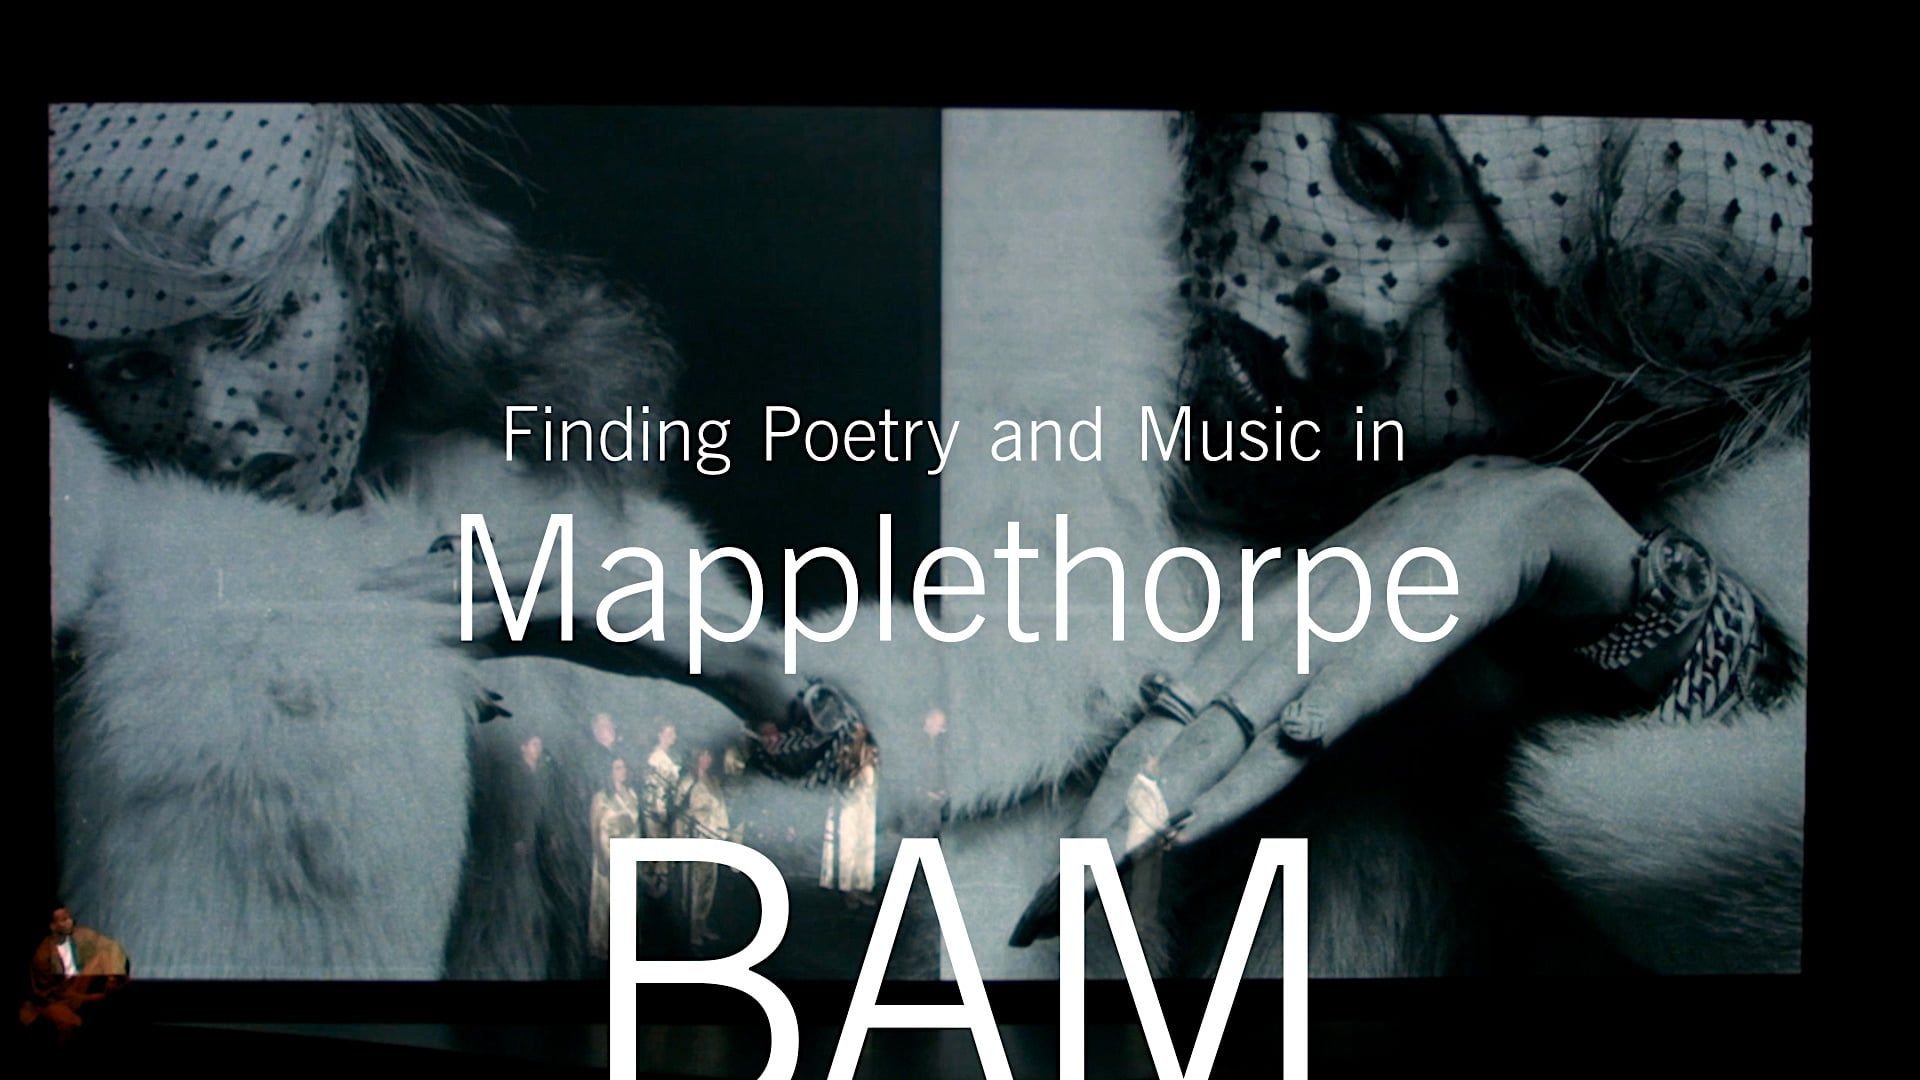 Finding Poetry and Music in Mapplethorpe